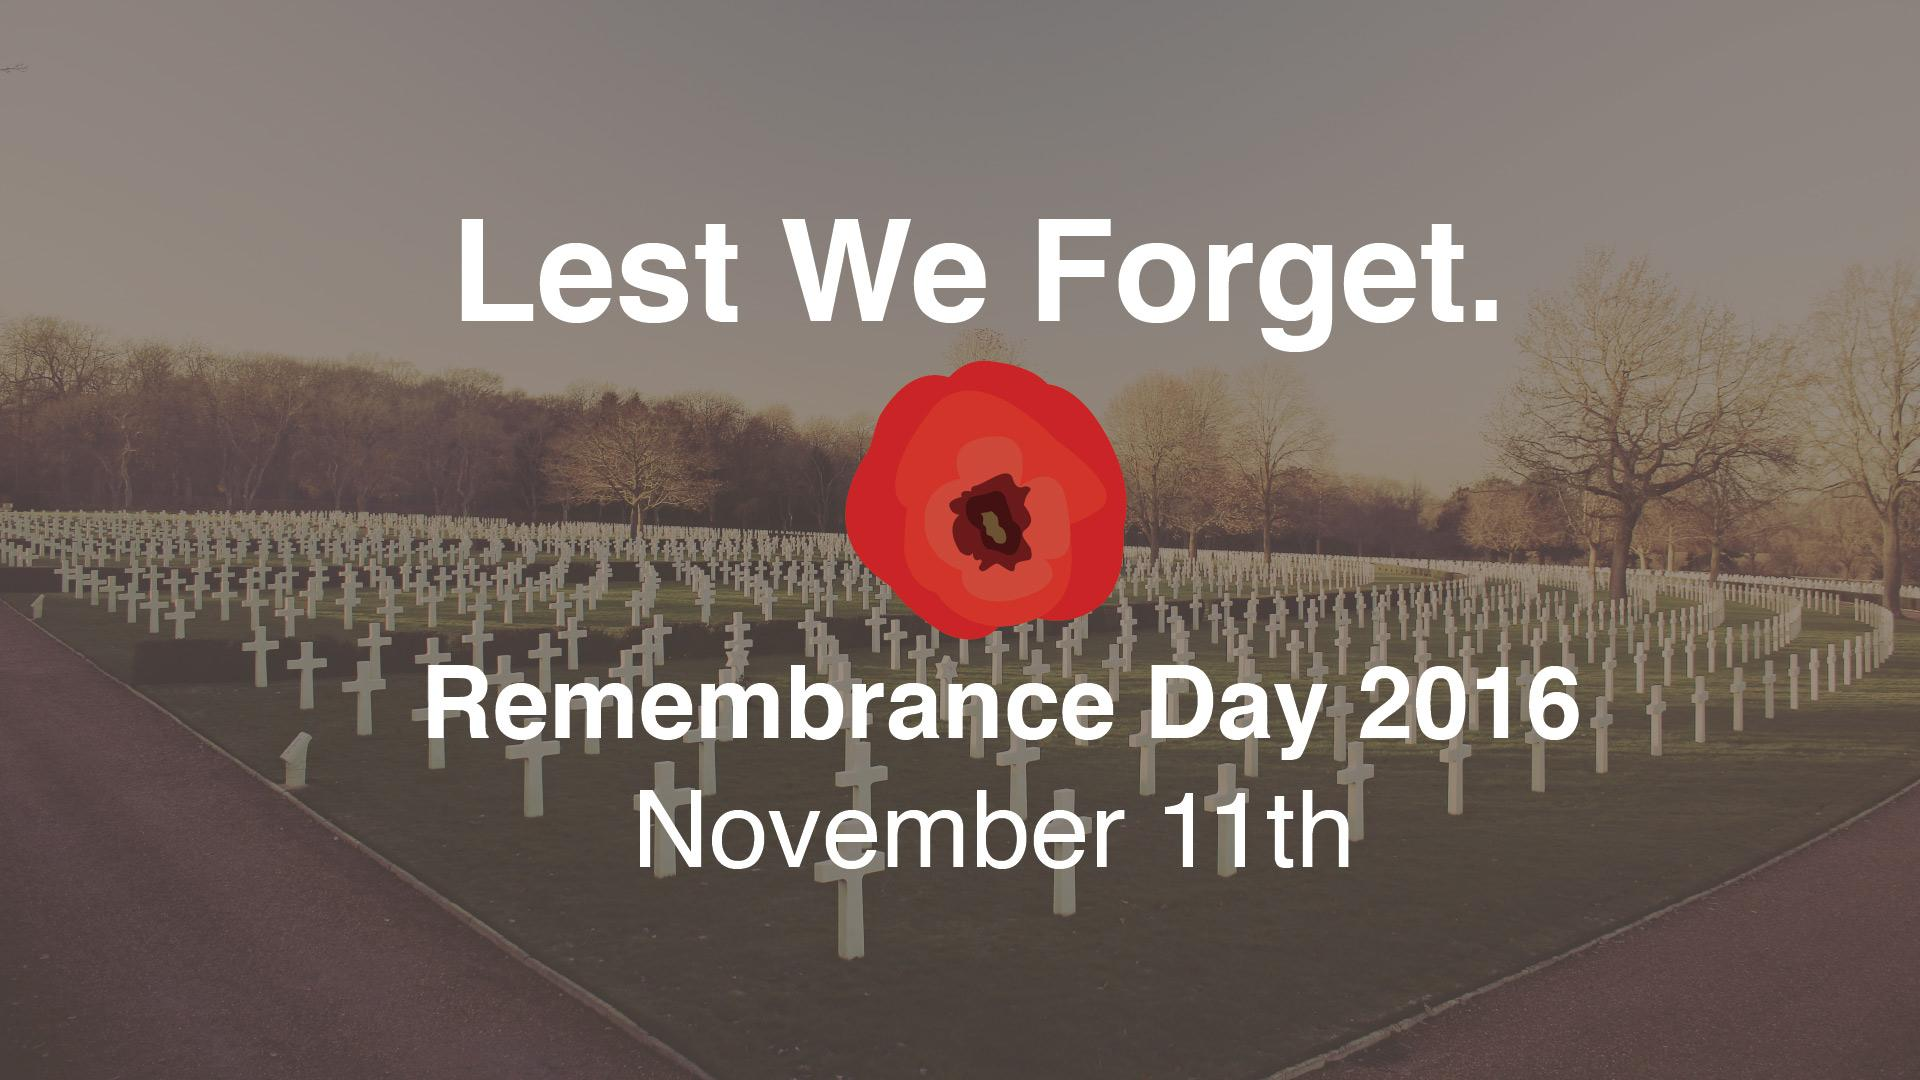 Remembrance & Veterans Day 2016